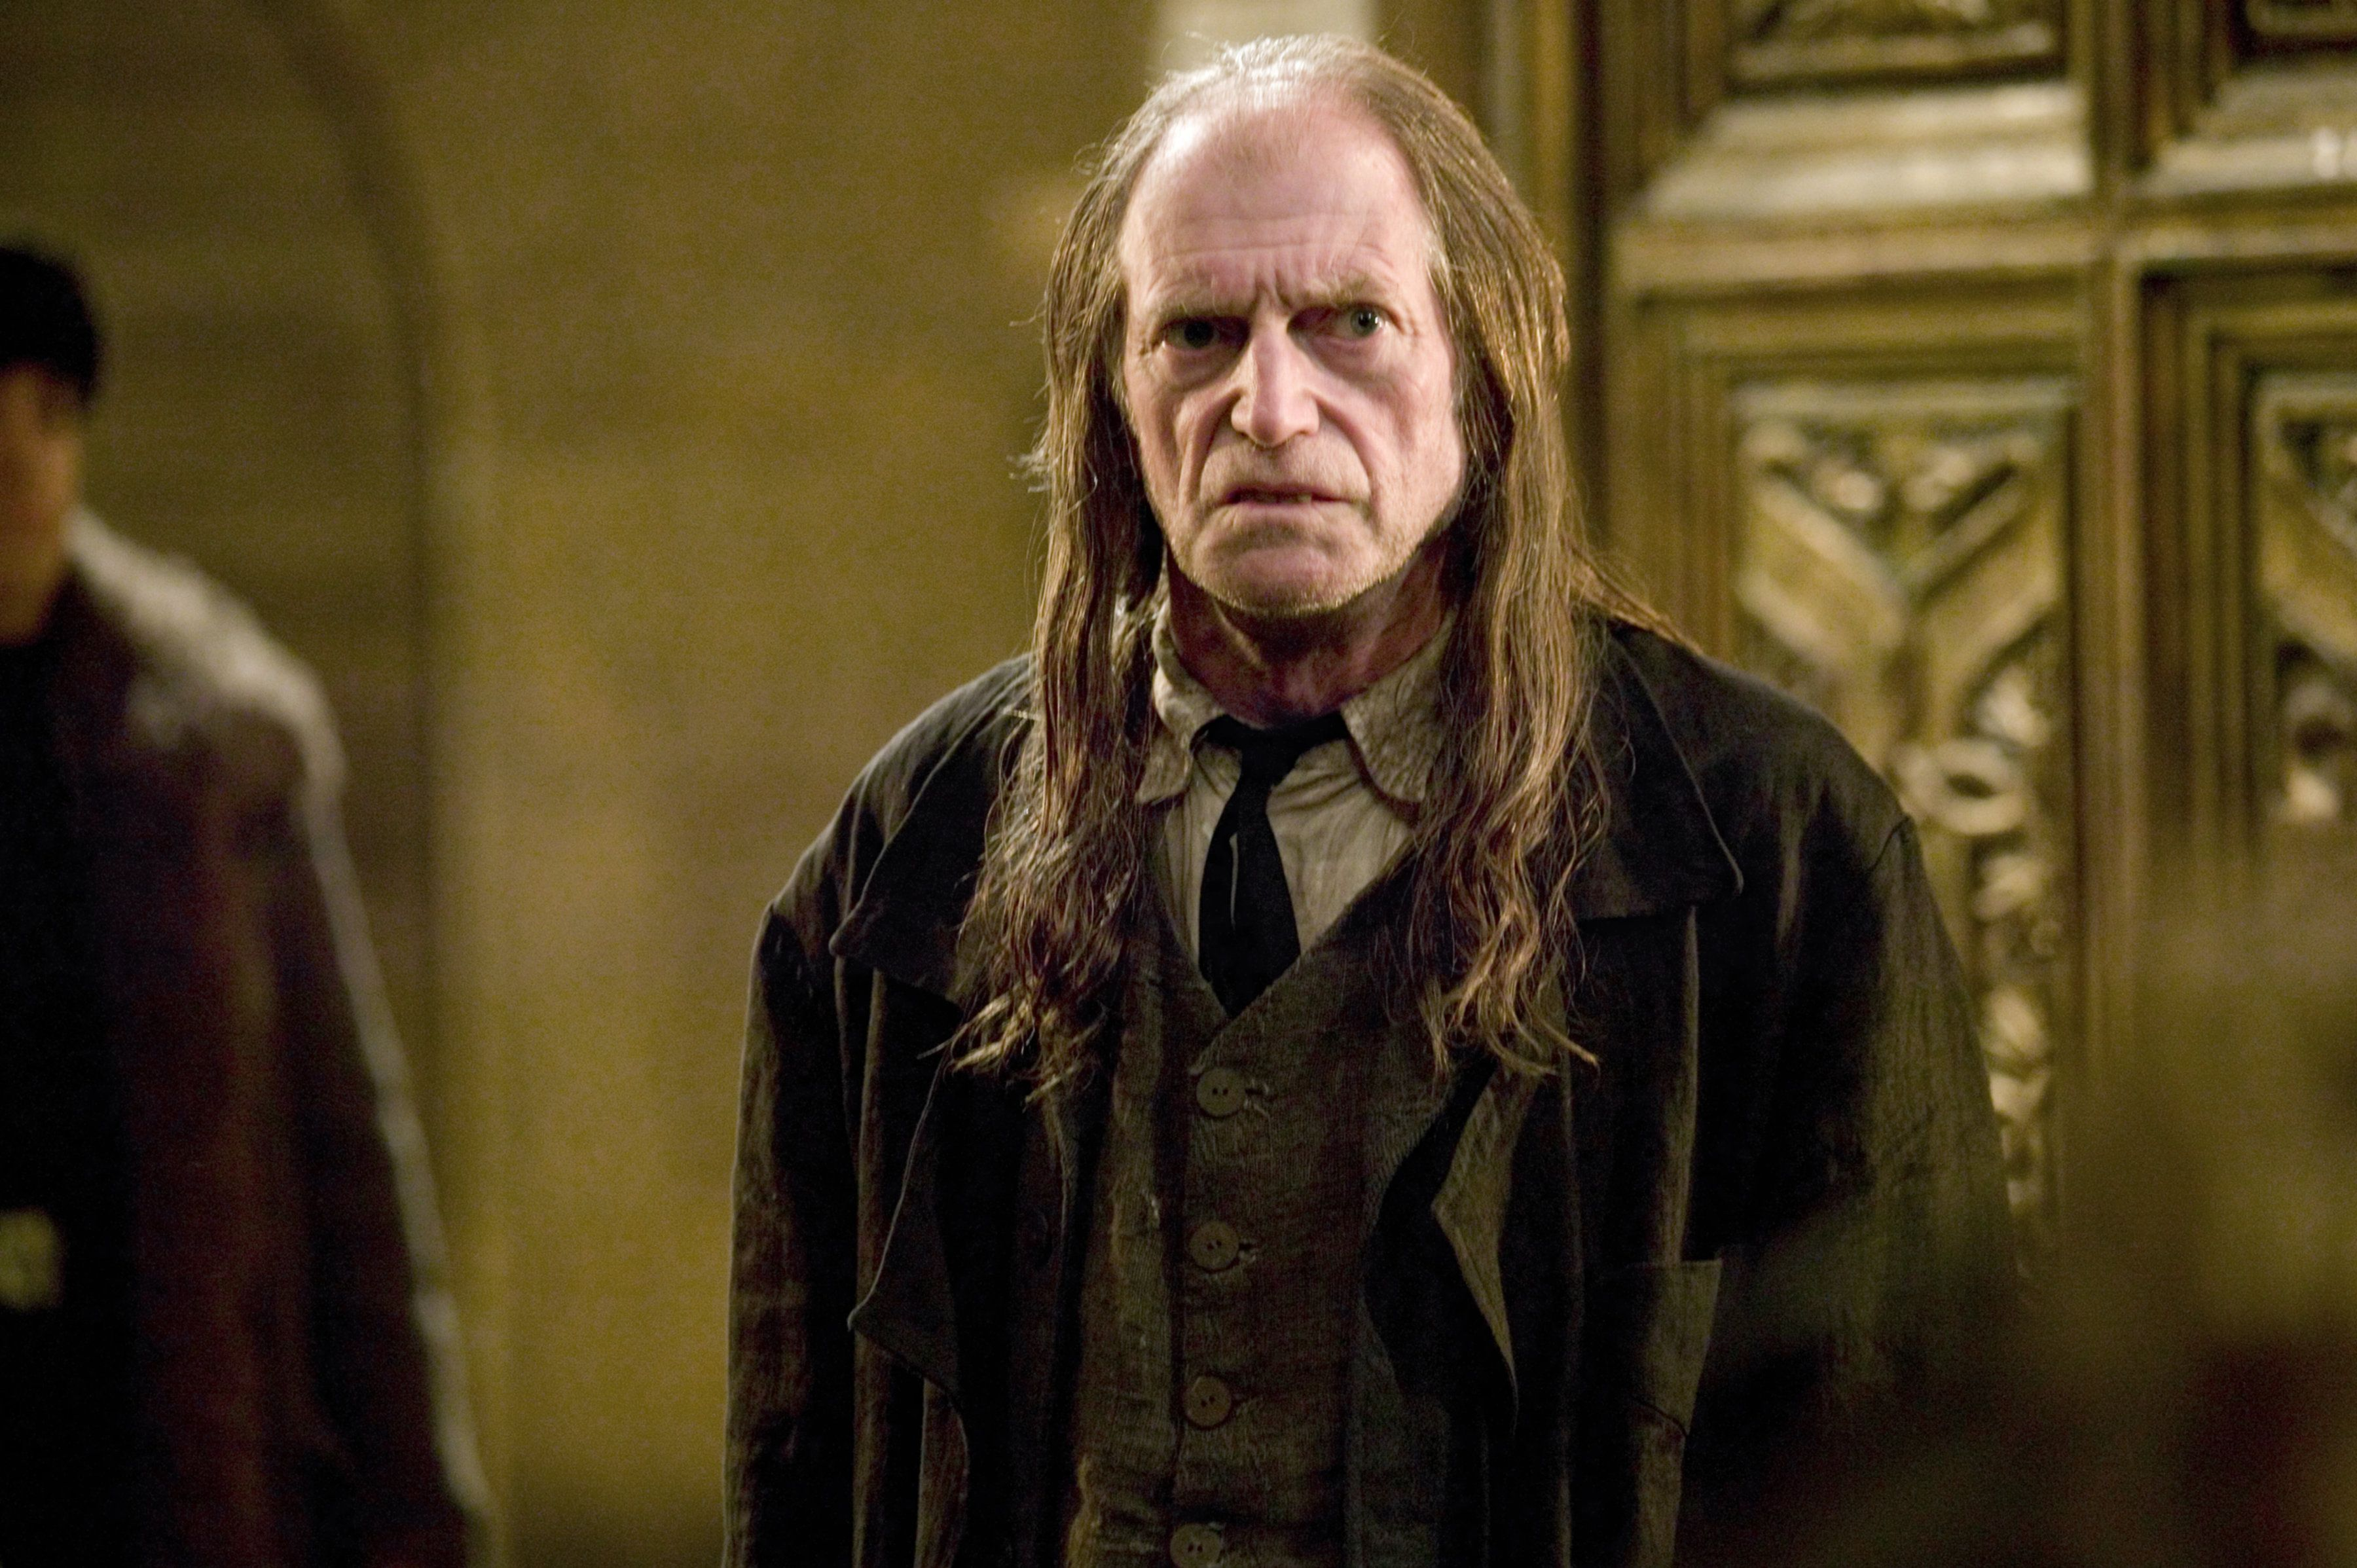 Behind The Scenes Argus Filch Pottermore Harry Potter Scene Harry Potter Characters Hogwarts Staff